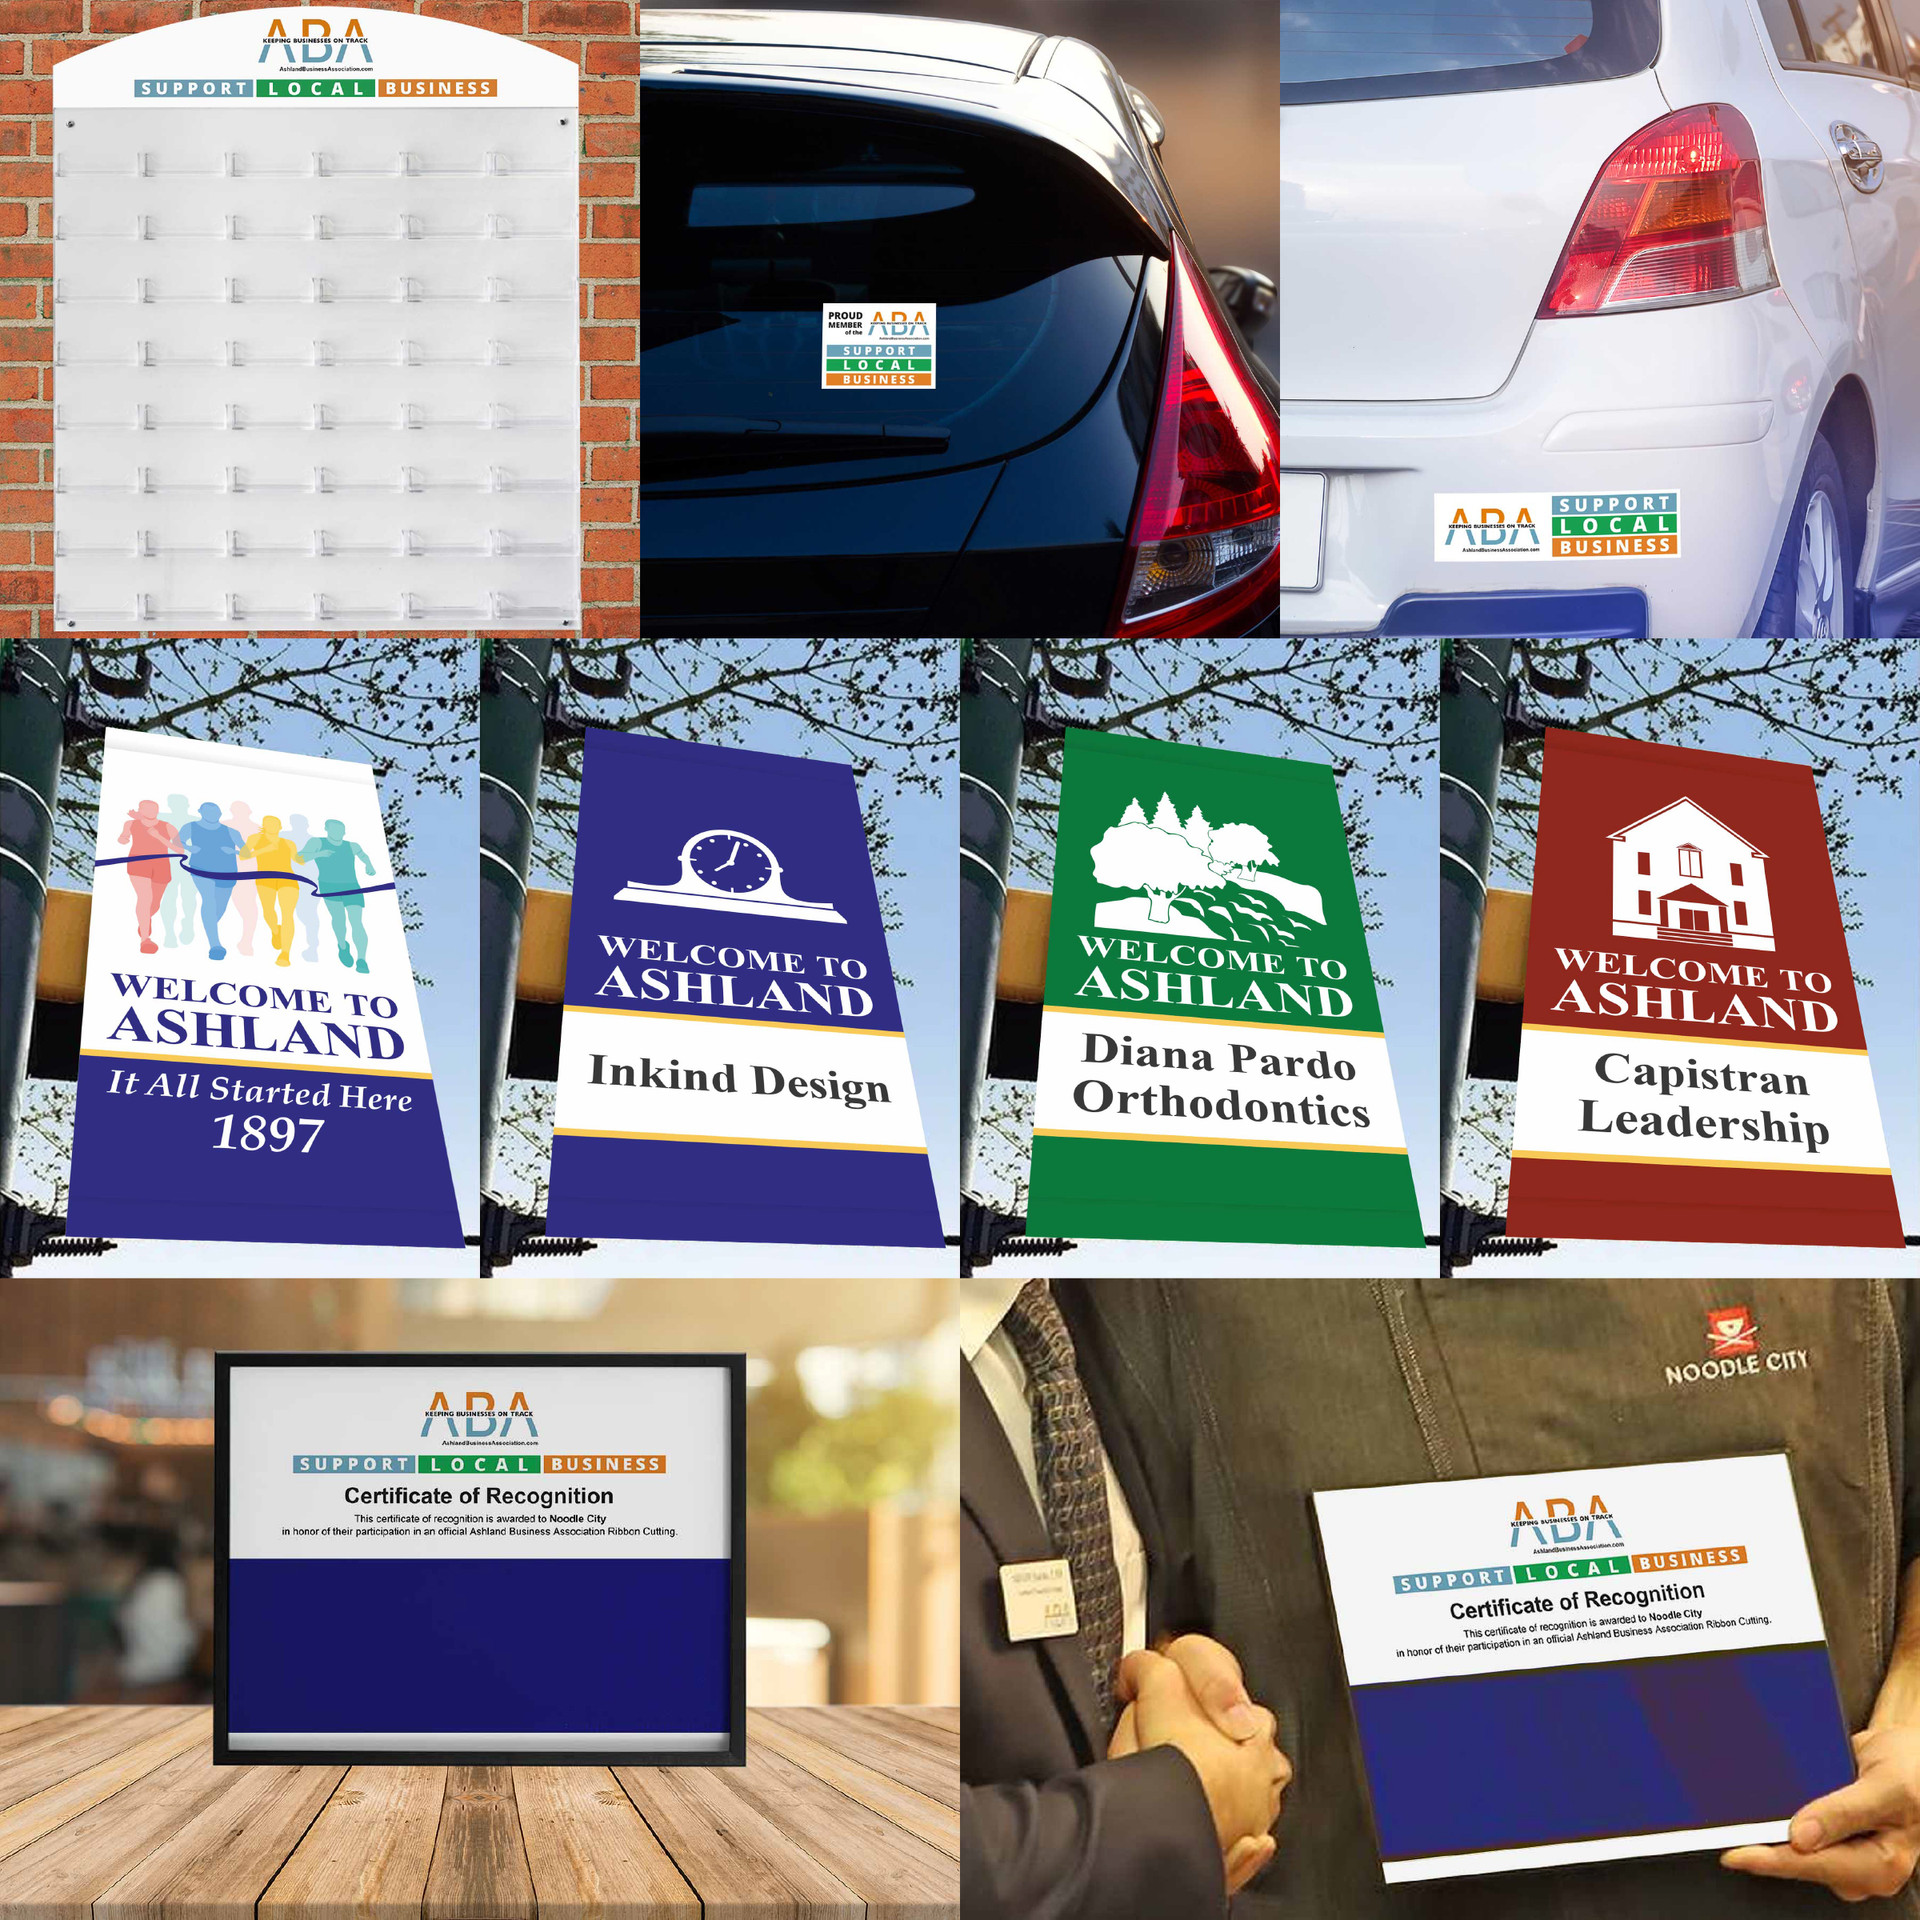 TOWN MARKETING COLLATERAL, MAIN STREET BANNERS, BUSINESS ASSOCIATION BRAND COLLATERAL